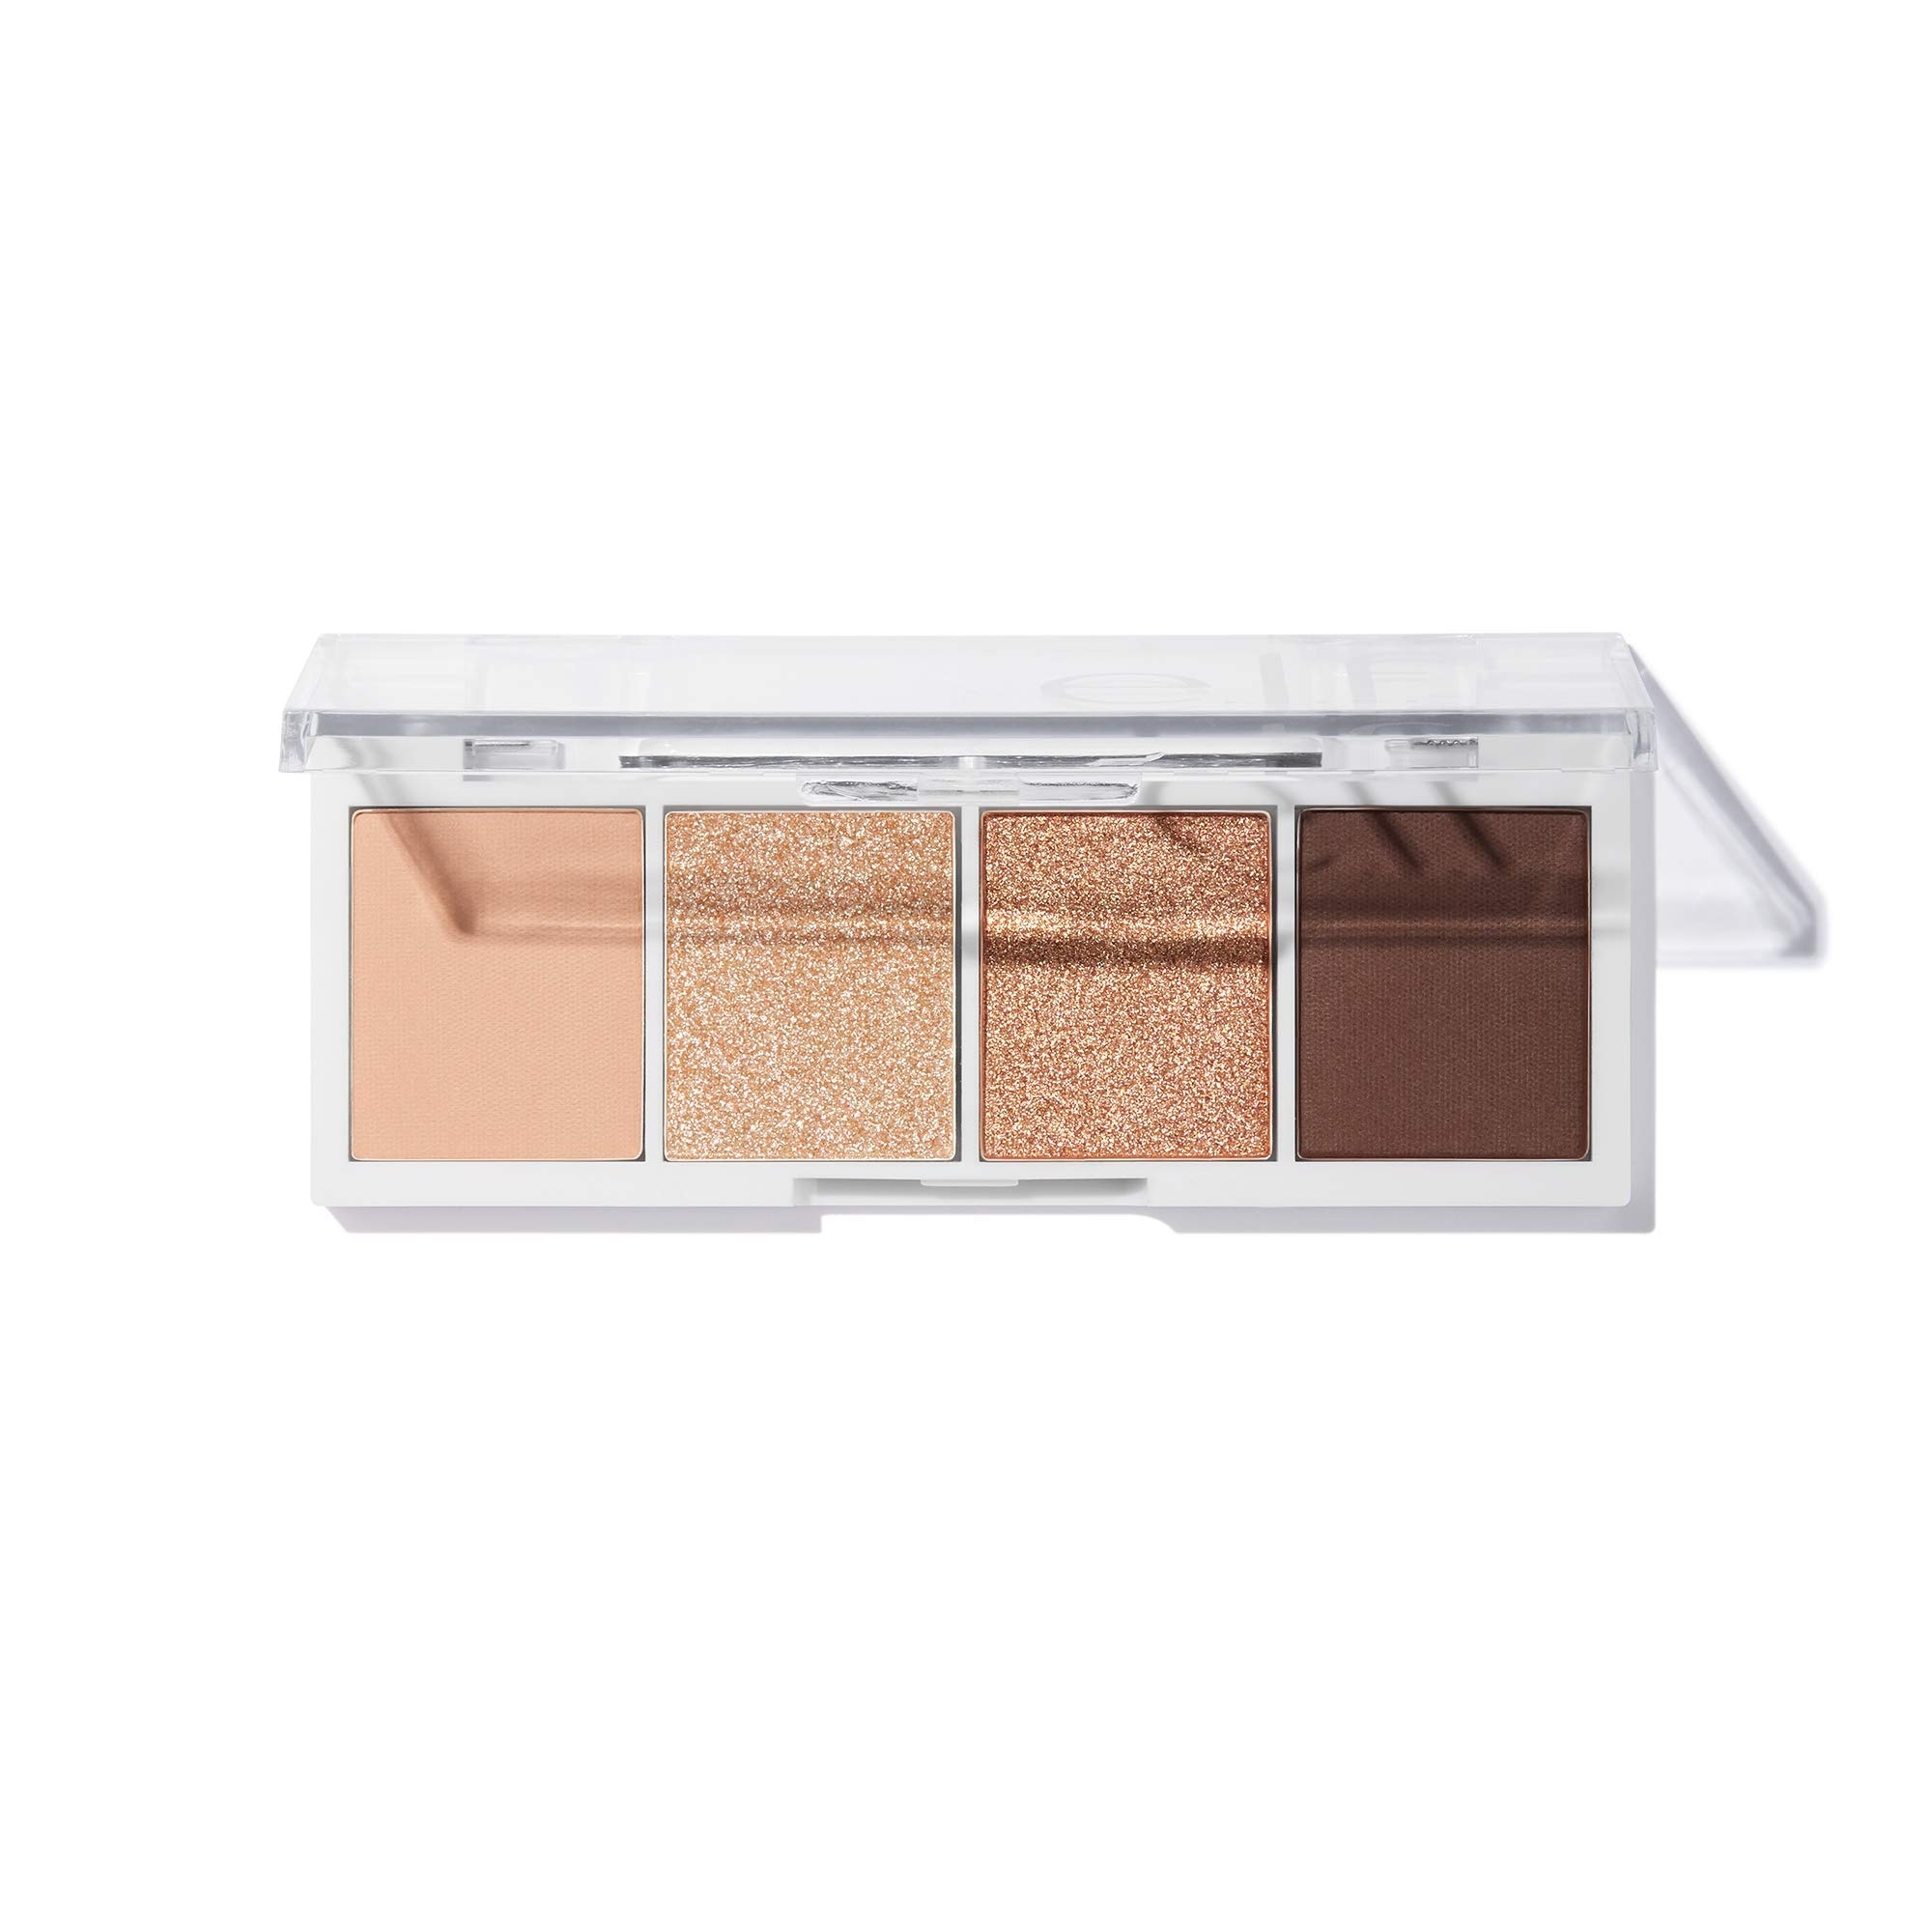 e.l.f, Bite-Size Eyeshadows, Creamy, Blendable, Ultra-Pigmented, Easy to Apply, Cream & Sugar, Matte & Shimmer, 0.12 Oz